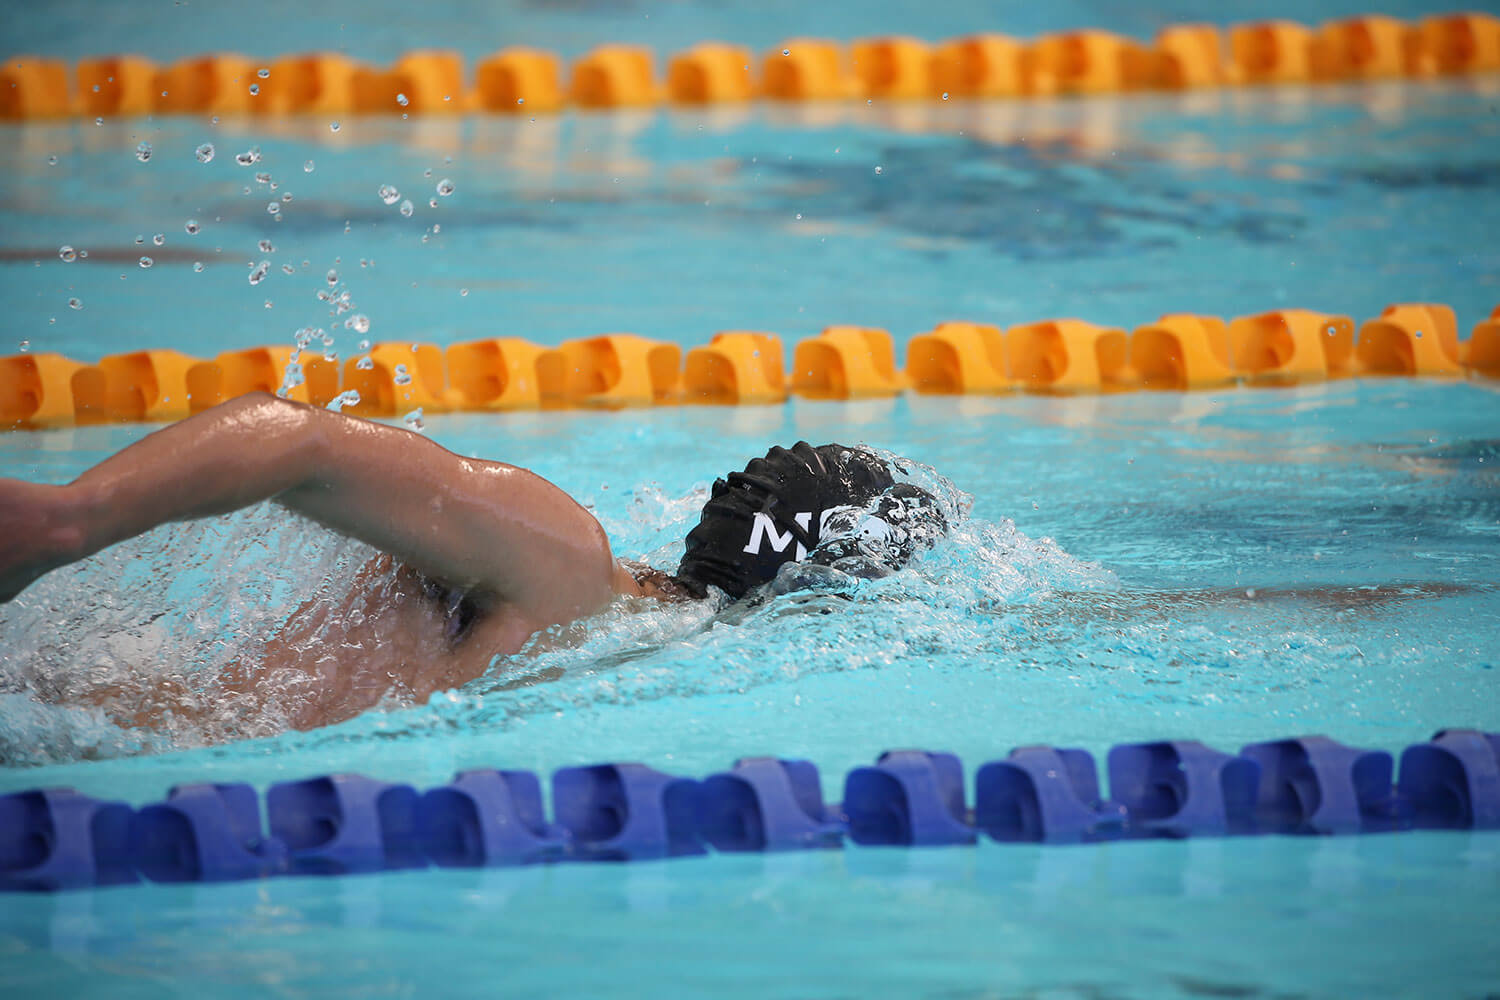 MSC Swimmer swimming in the water with a MSC cap